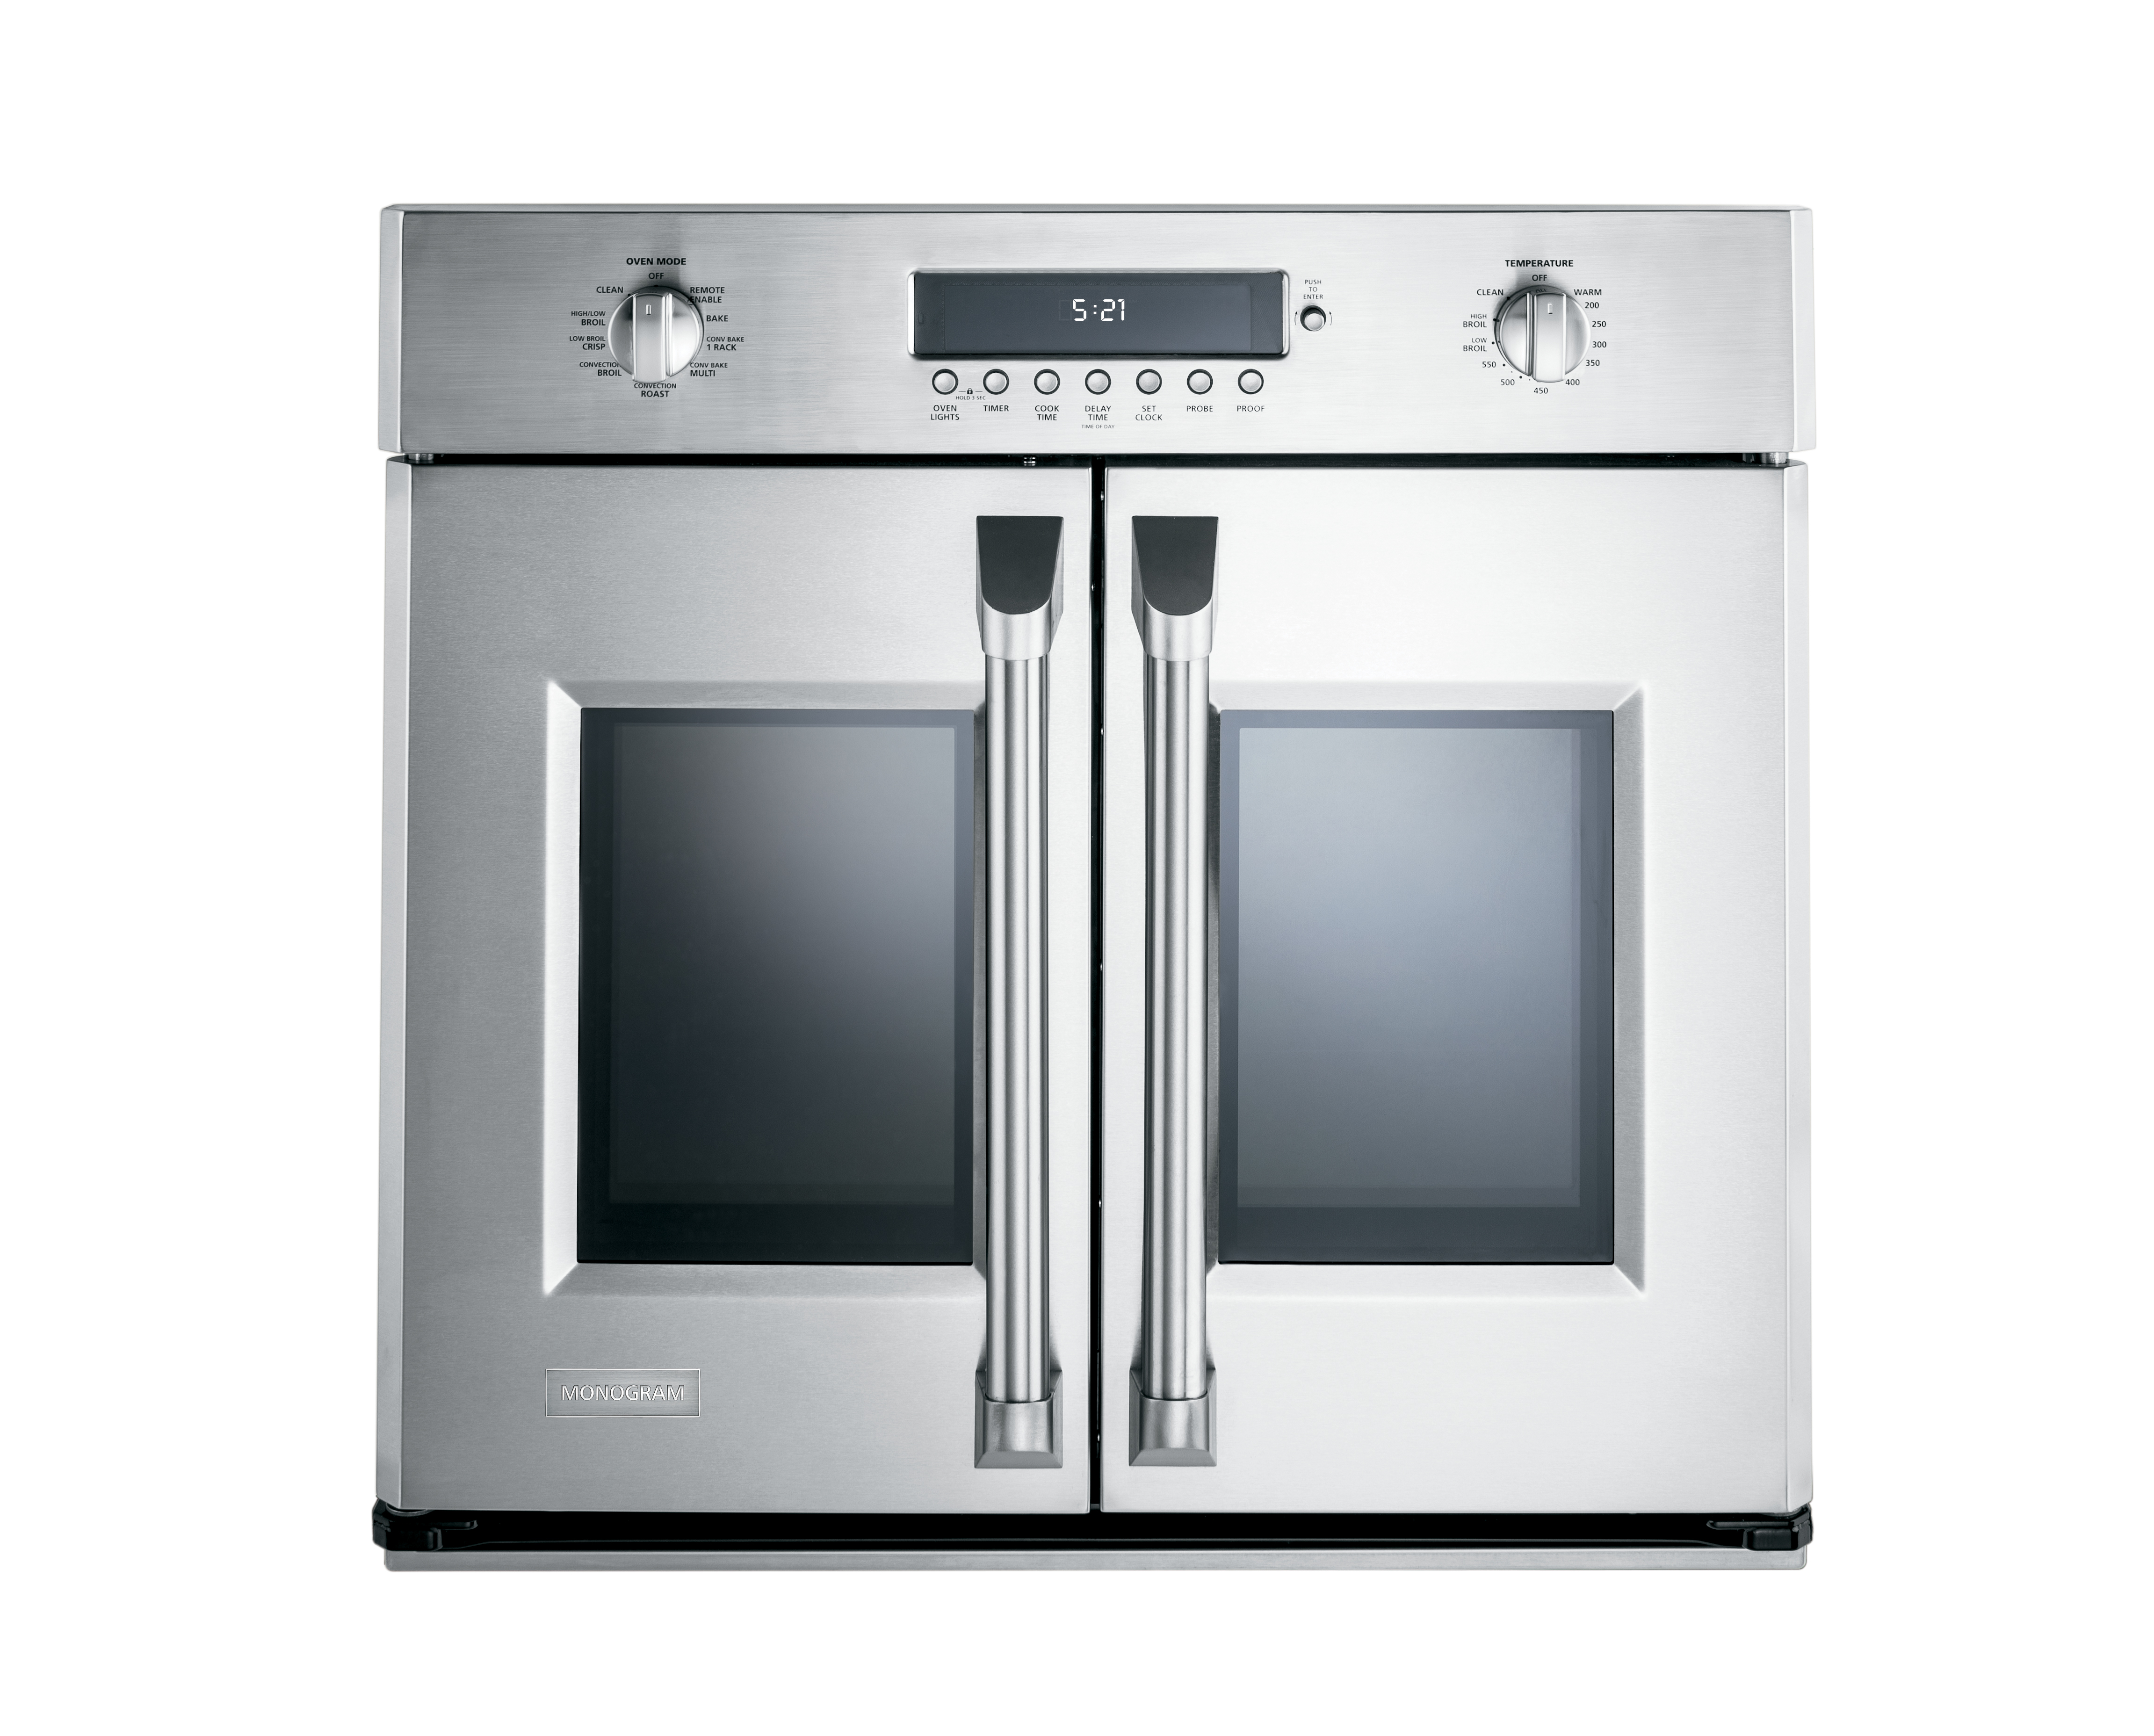 new ge monogram french door wall oven puts culinary possibilities within reach ge appliances pressroom